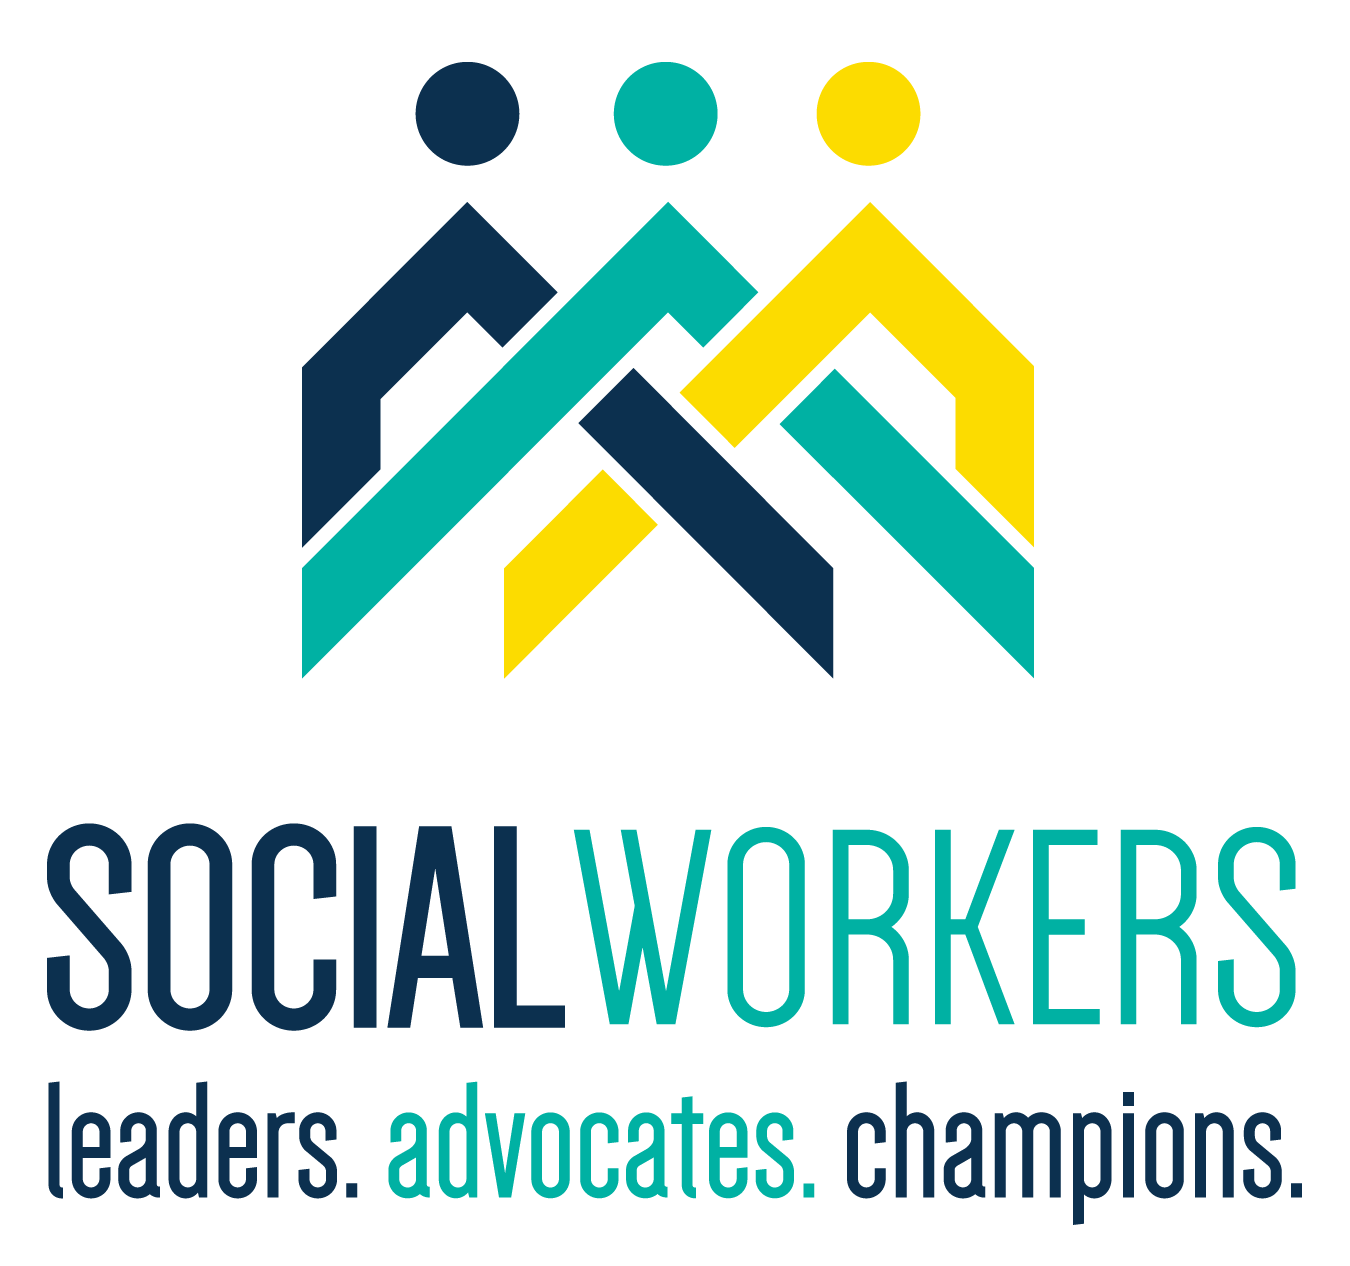 Social work month 2018 national association of social workers nc the official theme for social work month in march 2018 is social workers leaders advocates champions xflitez Images